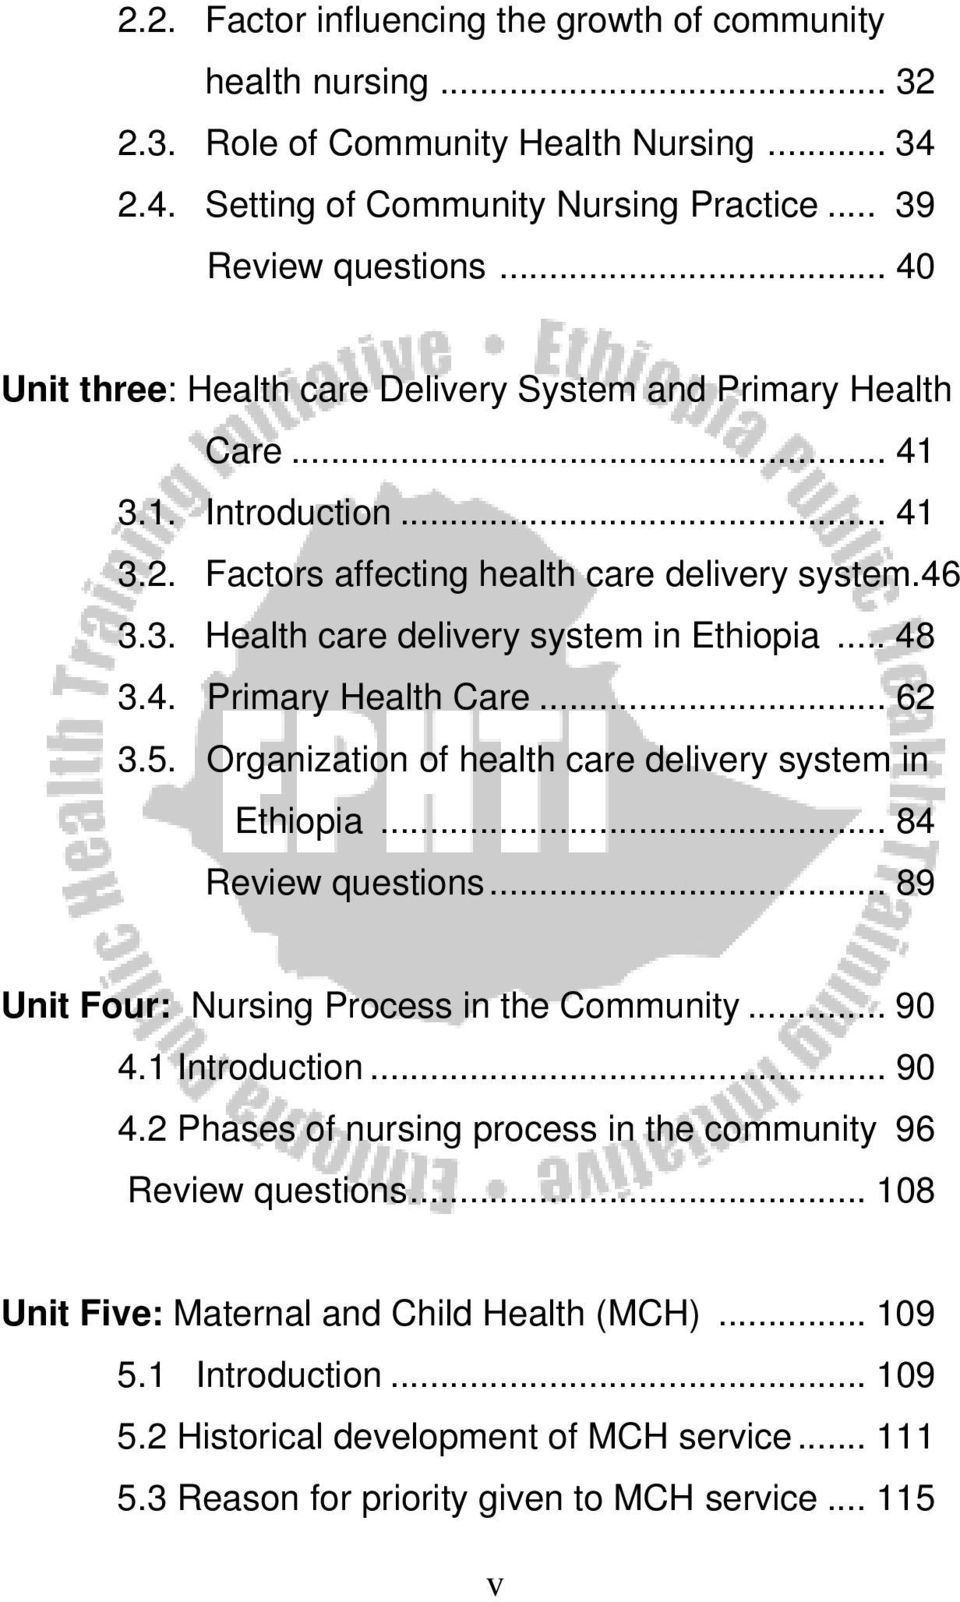 .. 48 3.4. Primary Health Care... 62 3.5. Organization of health care delivery system in Ethiopia... 84 Review questions... 89 Unit Four: Nursing Process in the Community... 90 4.